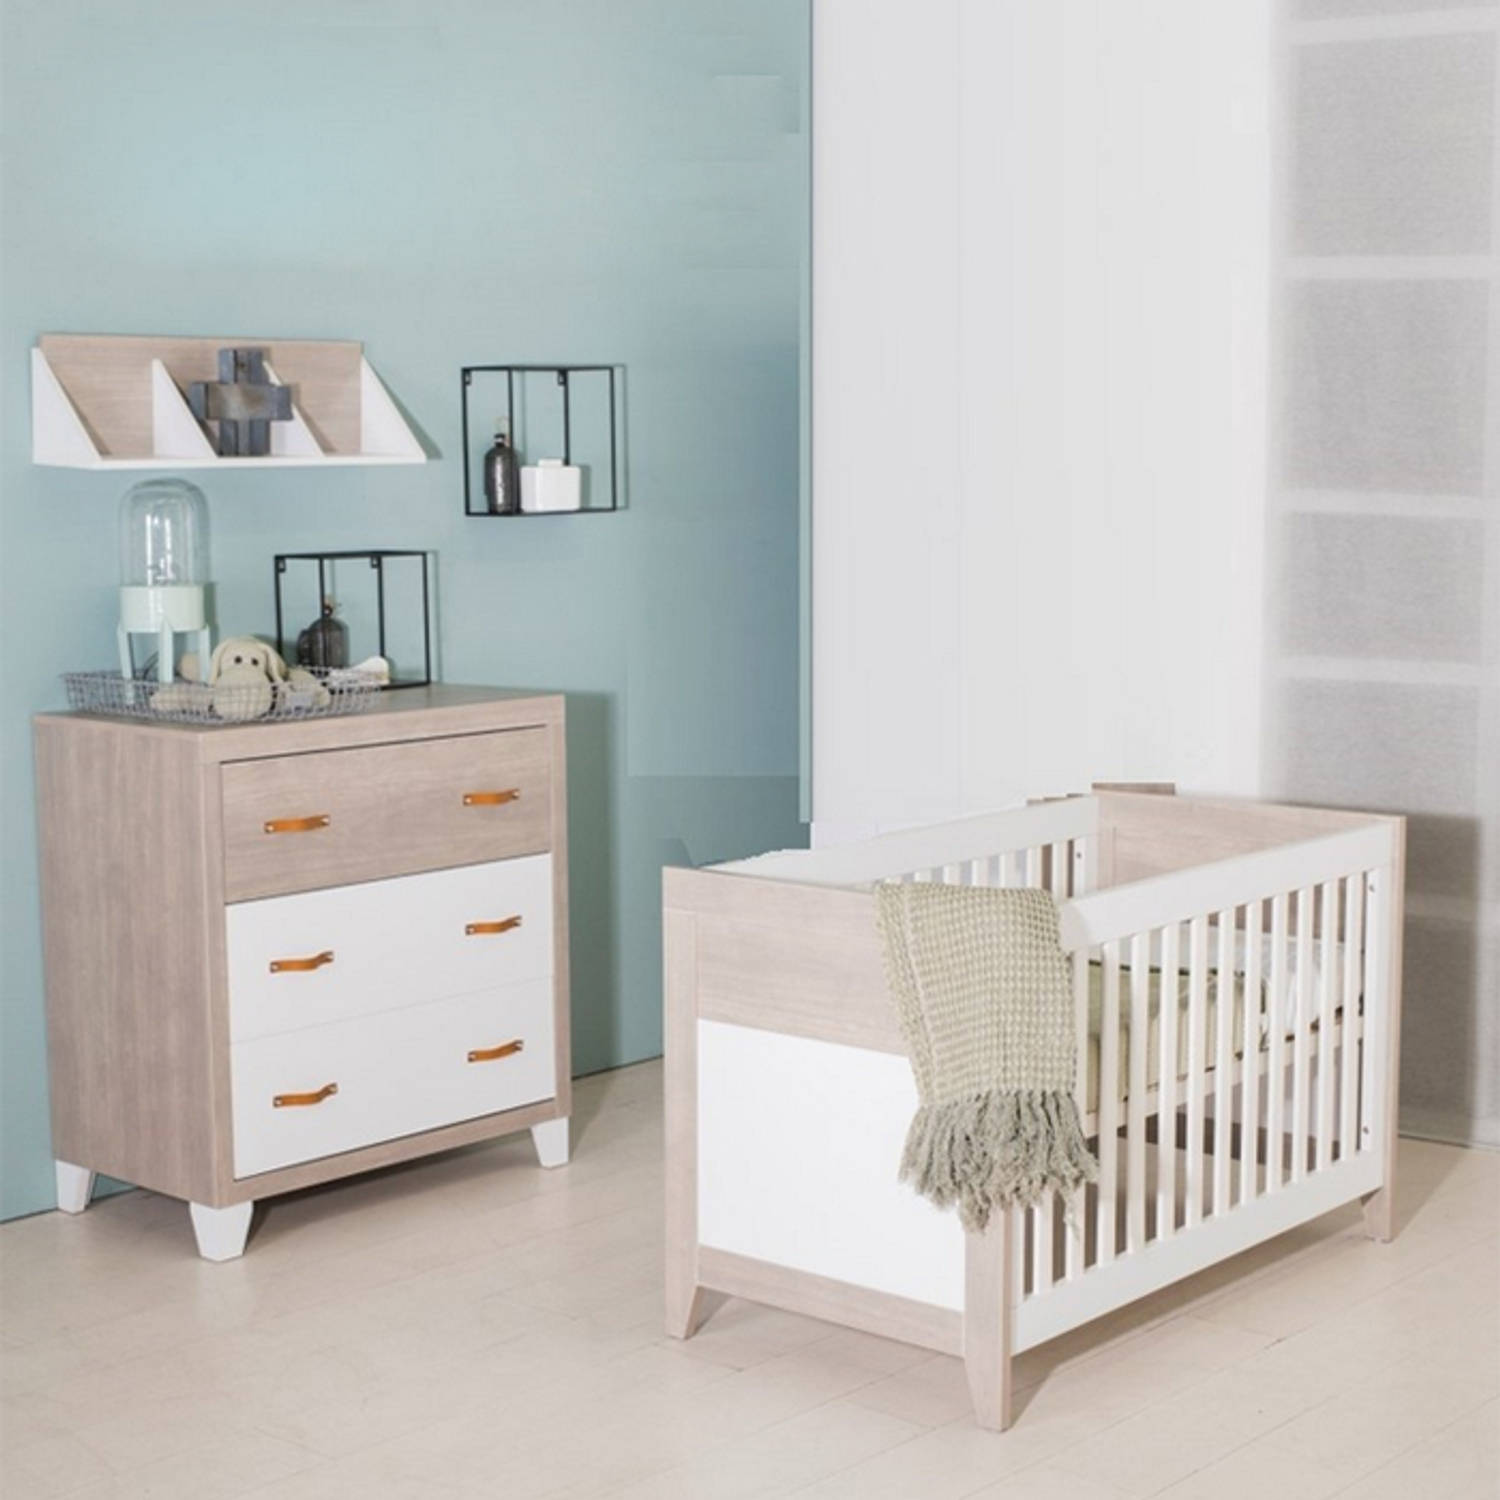 Bebies First Babykamer Boston 2-delig